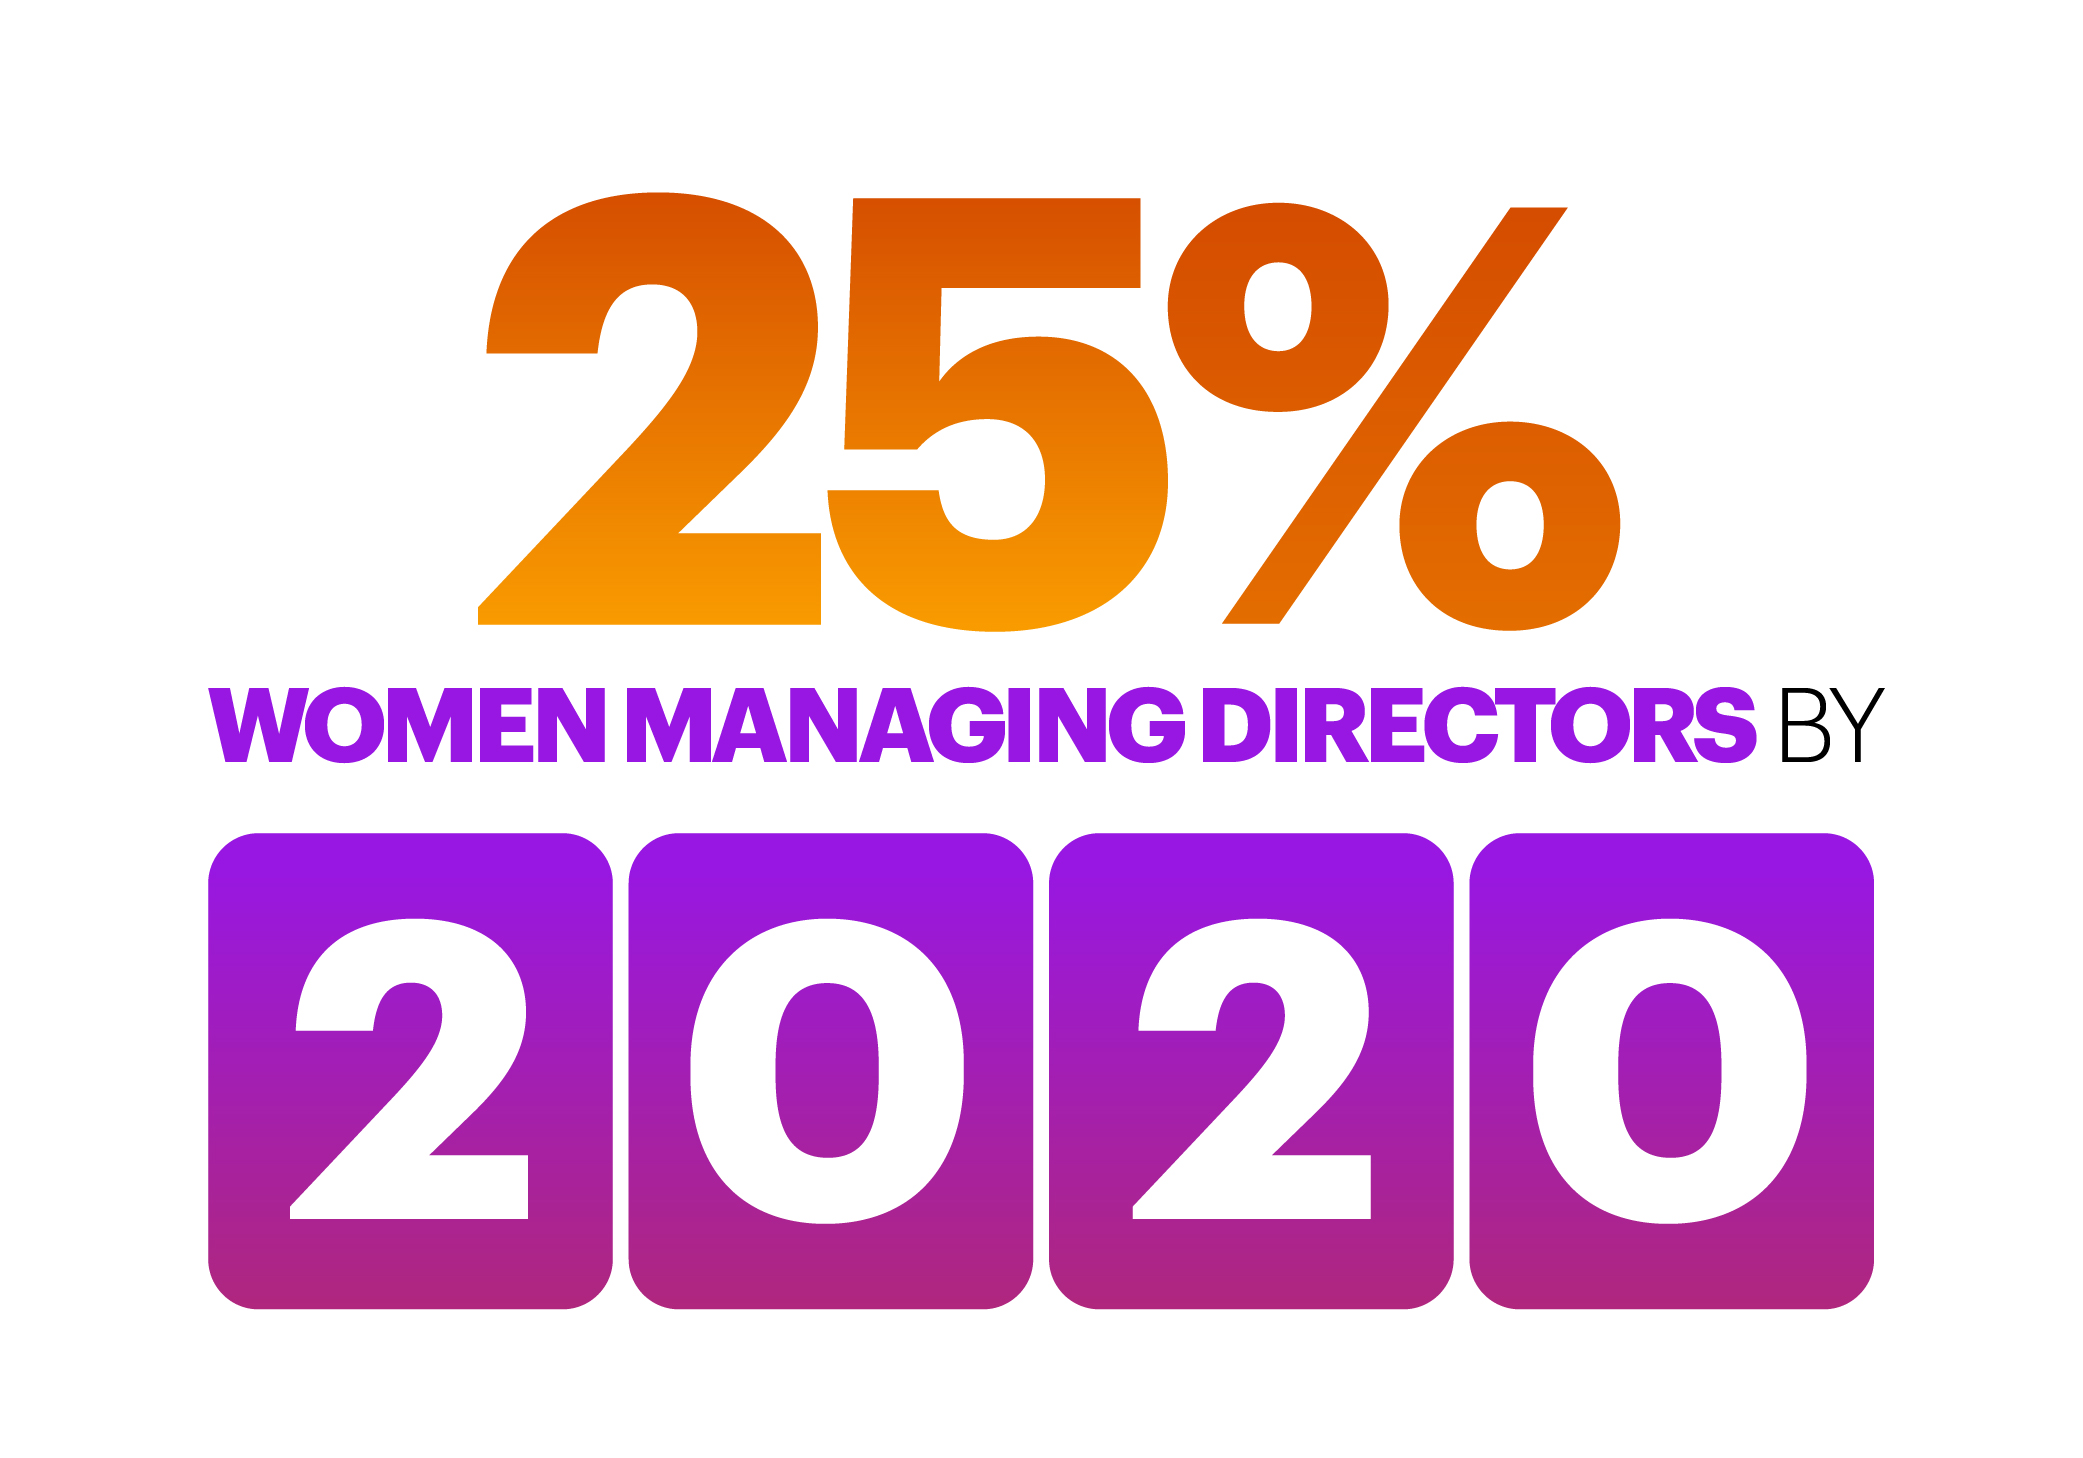 25% women managing directors by 2020